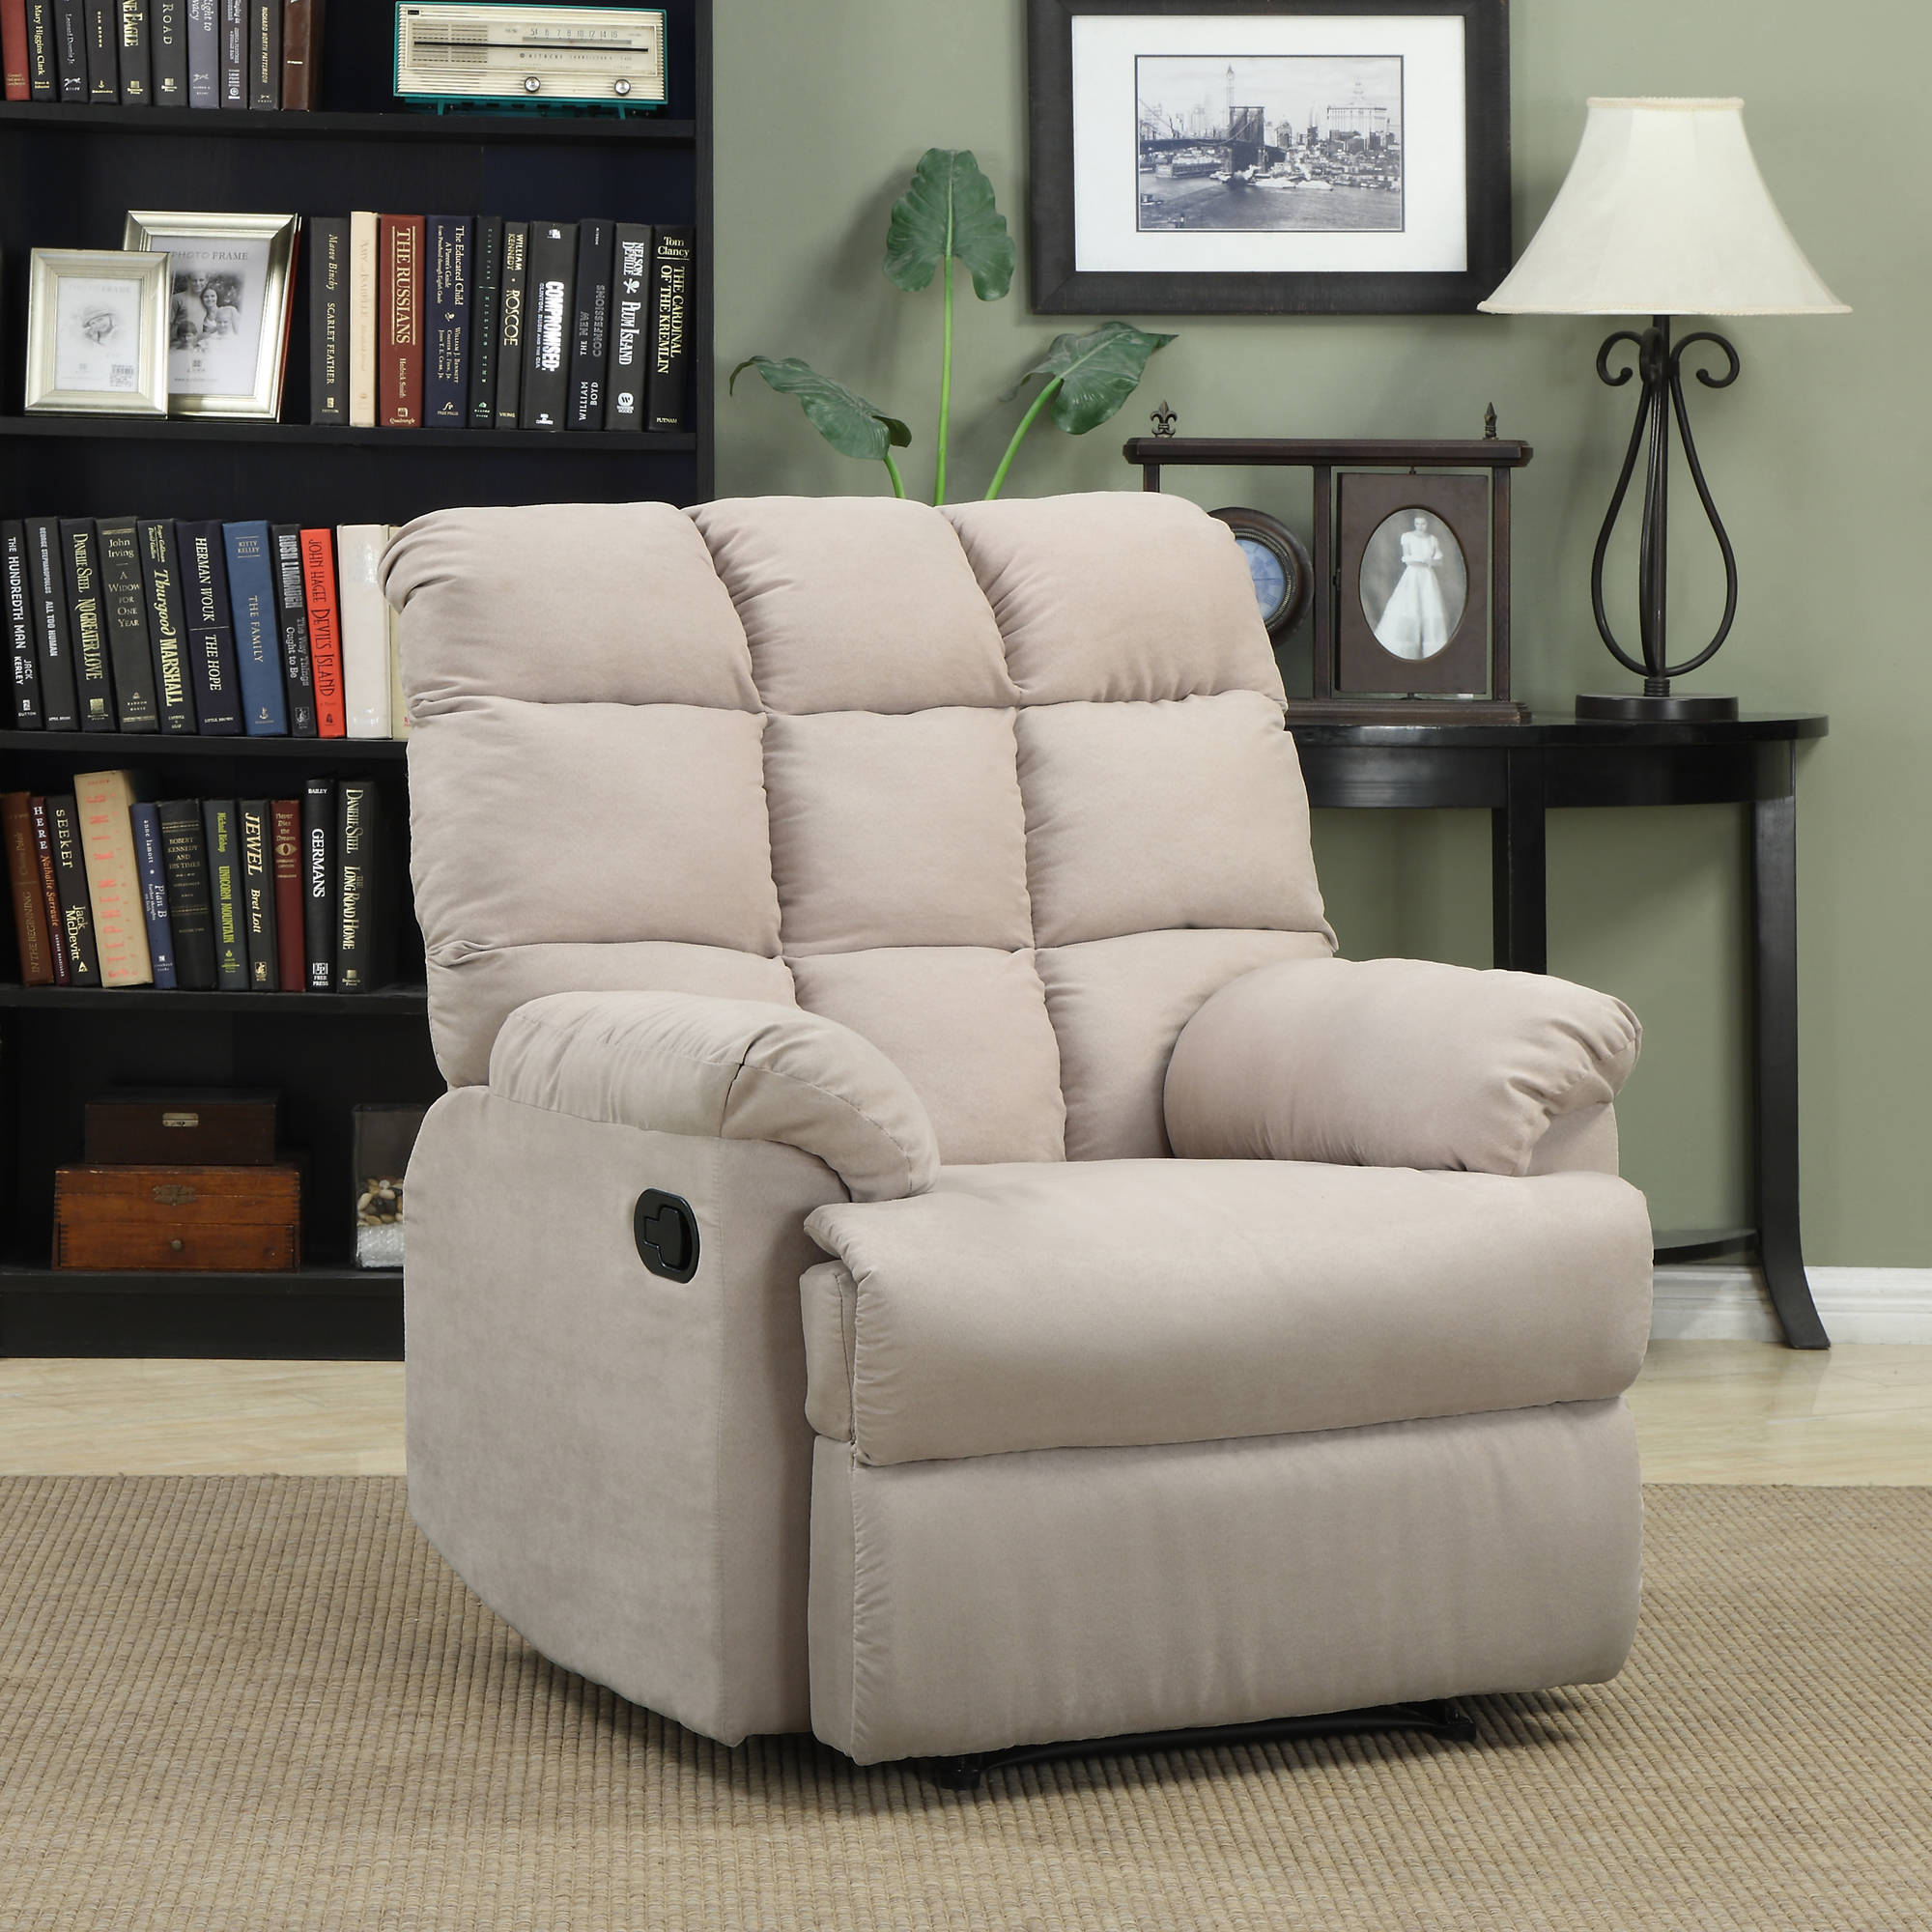 Mainstays Baja Wall Hugger Microfiber Biscuit back Recliner Chair Multiple Colors & Mainstays Baja Wall Hugger Microfiber Biscuit back Recliner Chair ... islam-shia.org